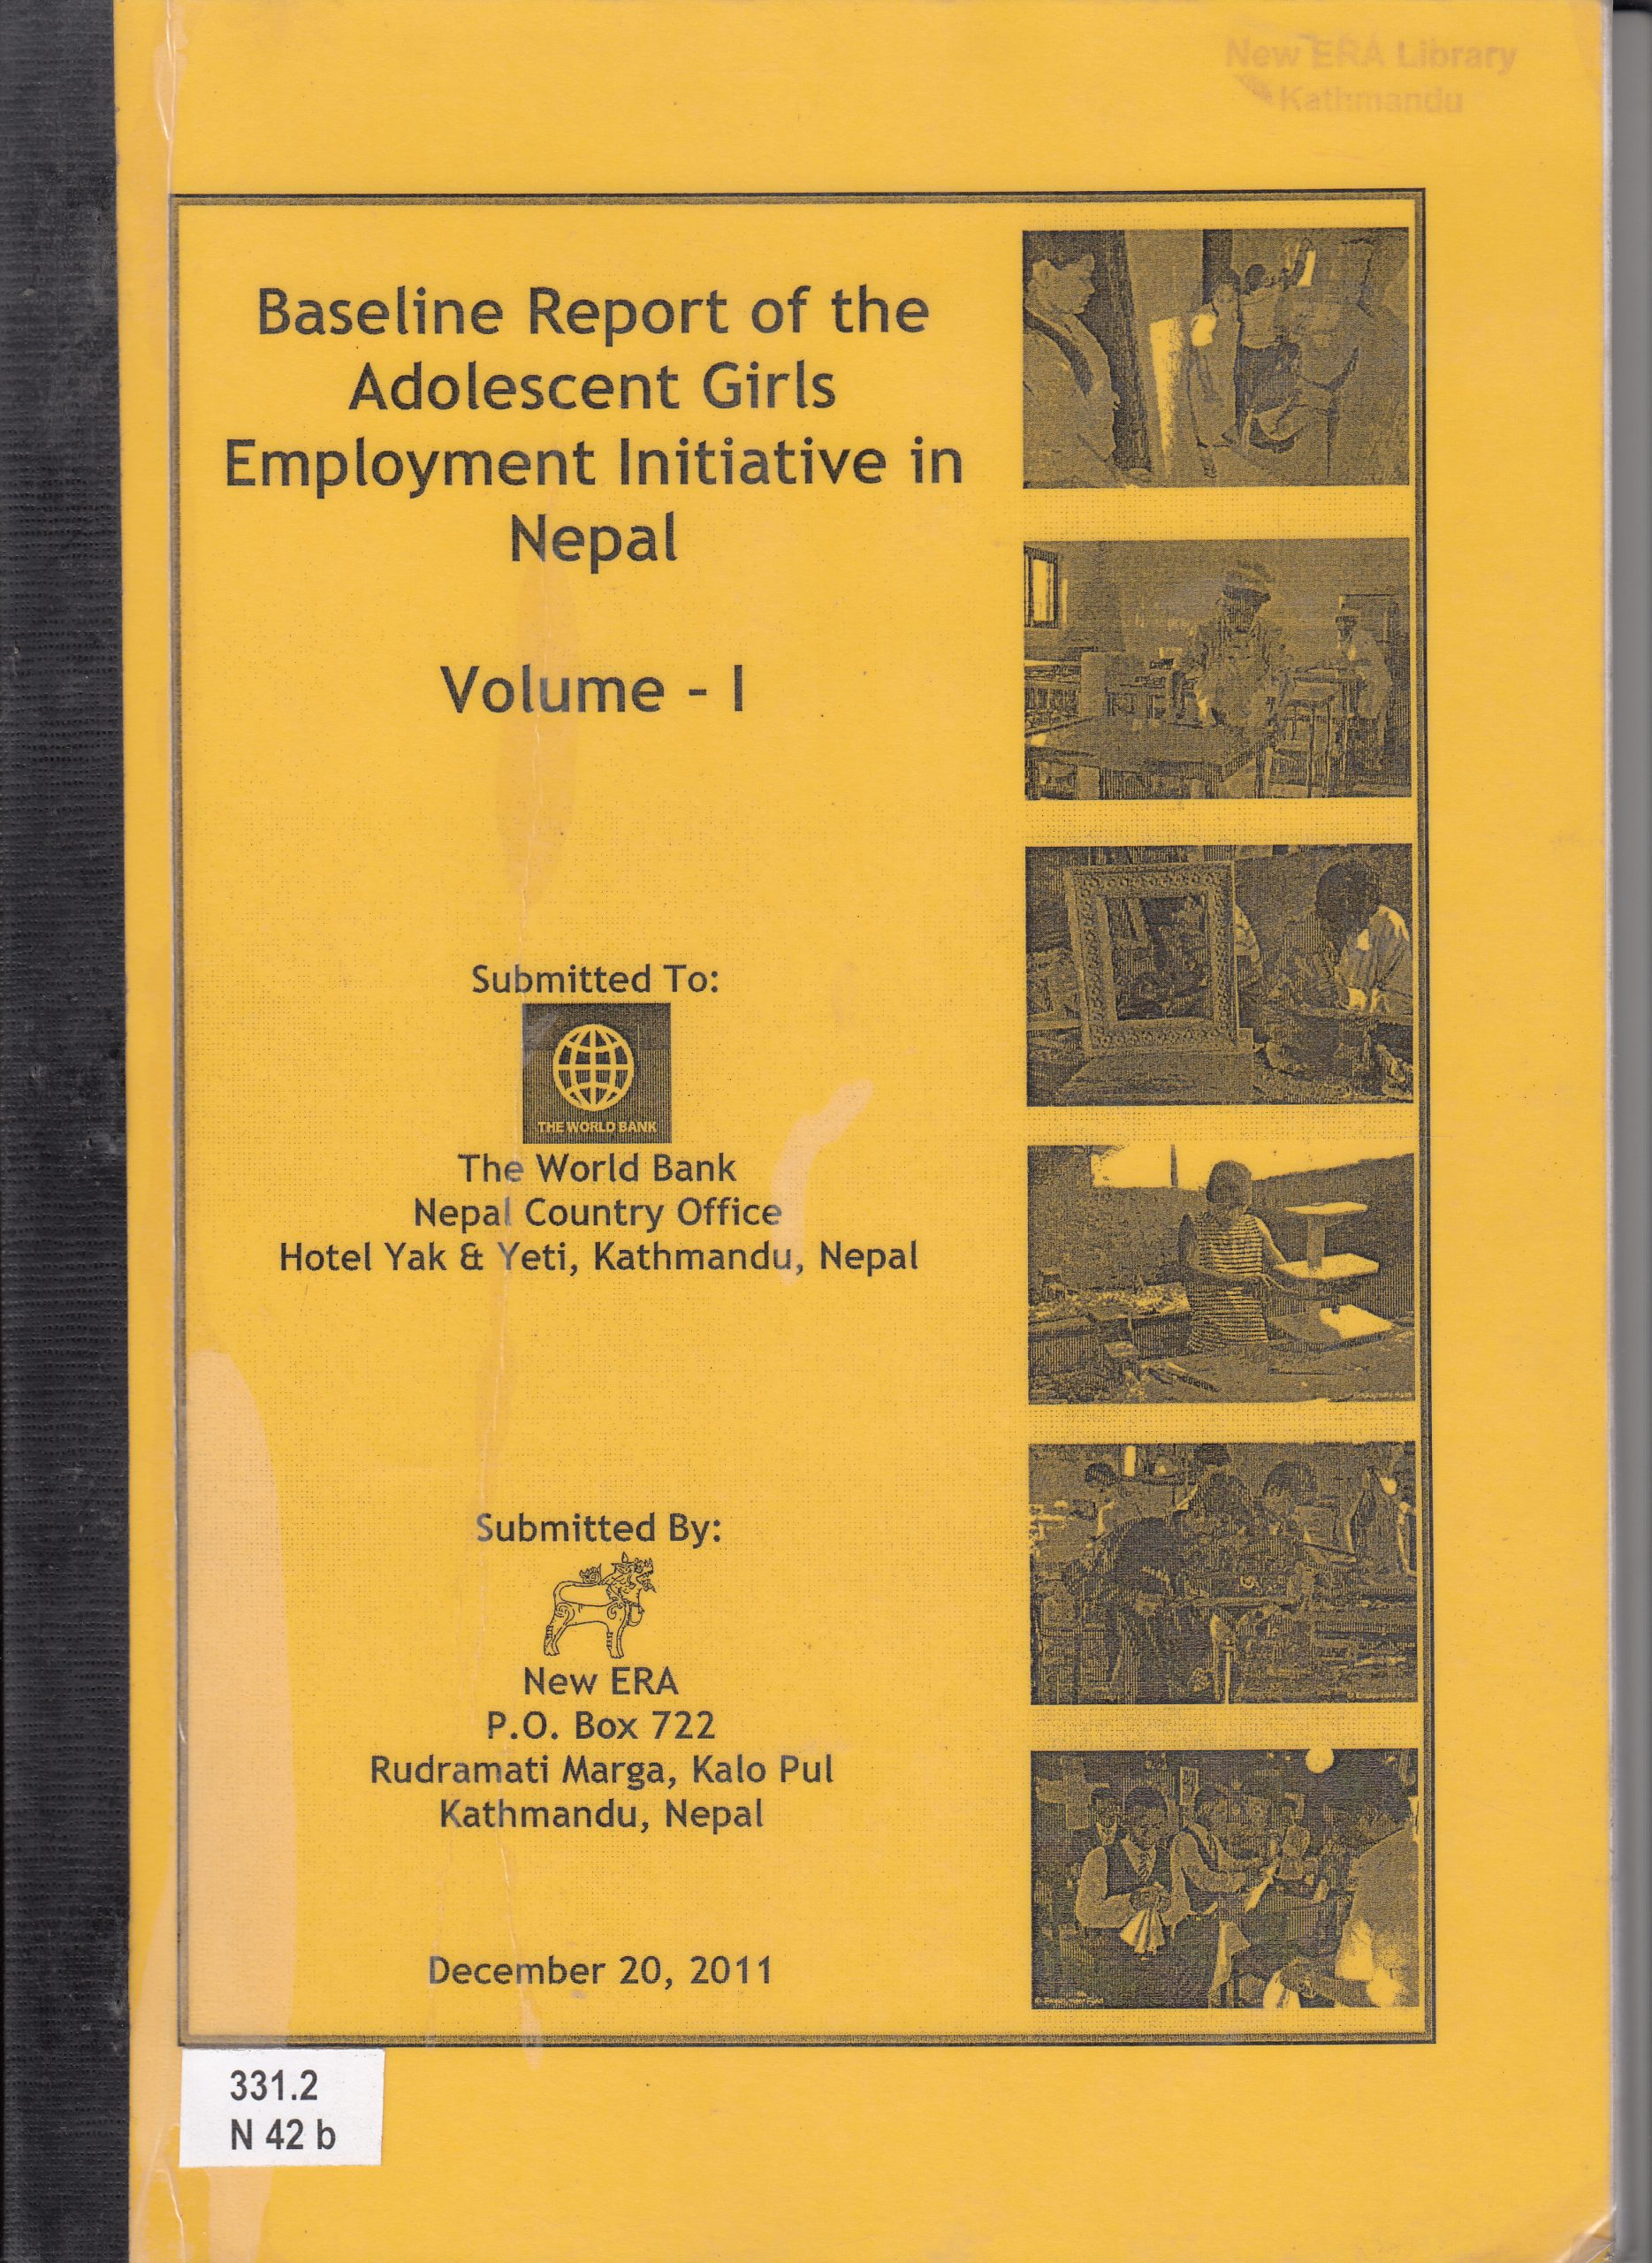 Baseline Survey of the Adolescent Girls Employment Initiative (AGEI) in Nepal 2011